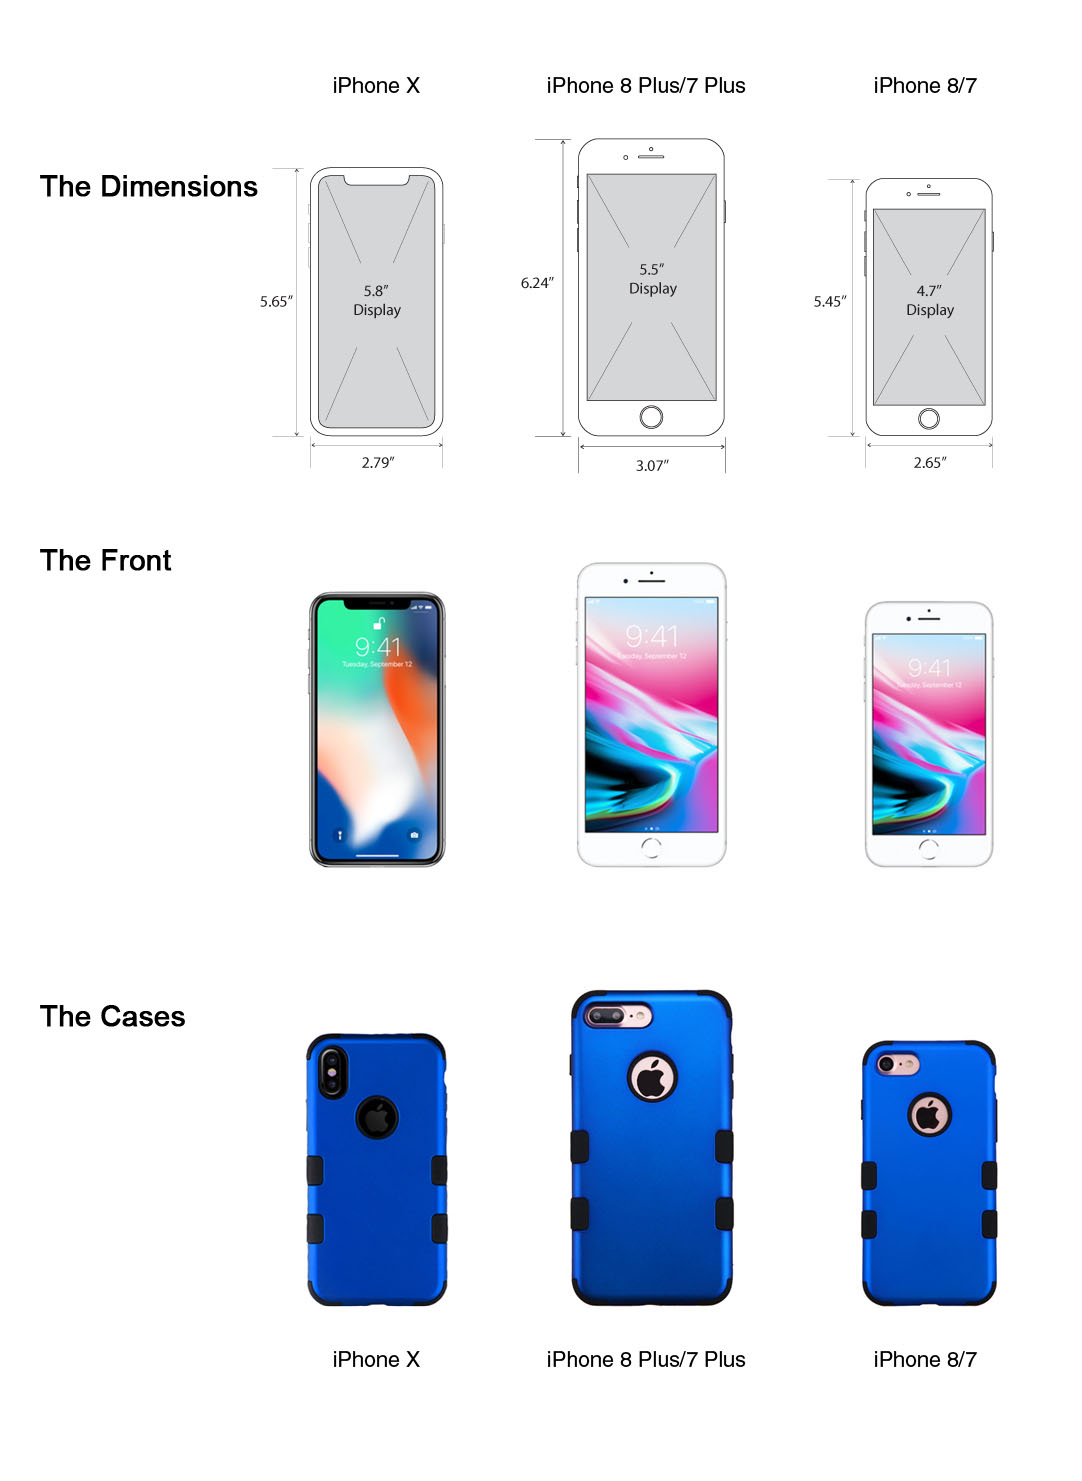 new concept 15b22 e3e2b iPhone X Case vs iPhone 8 Case. What's the difference?